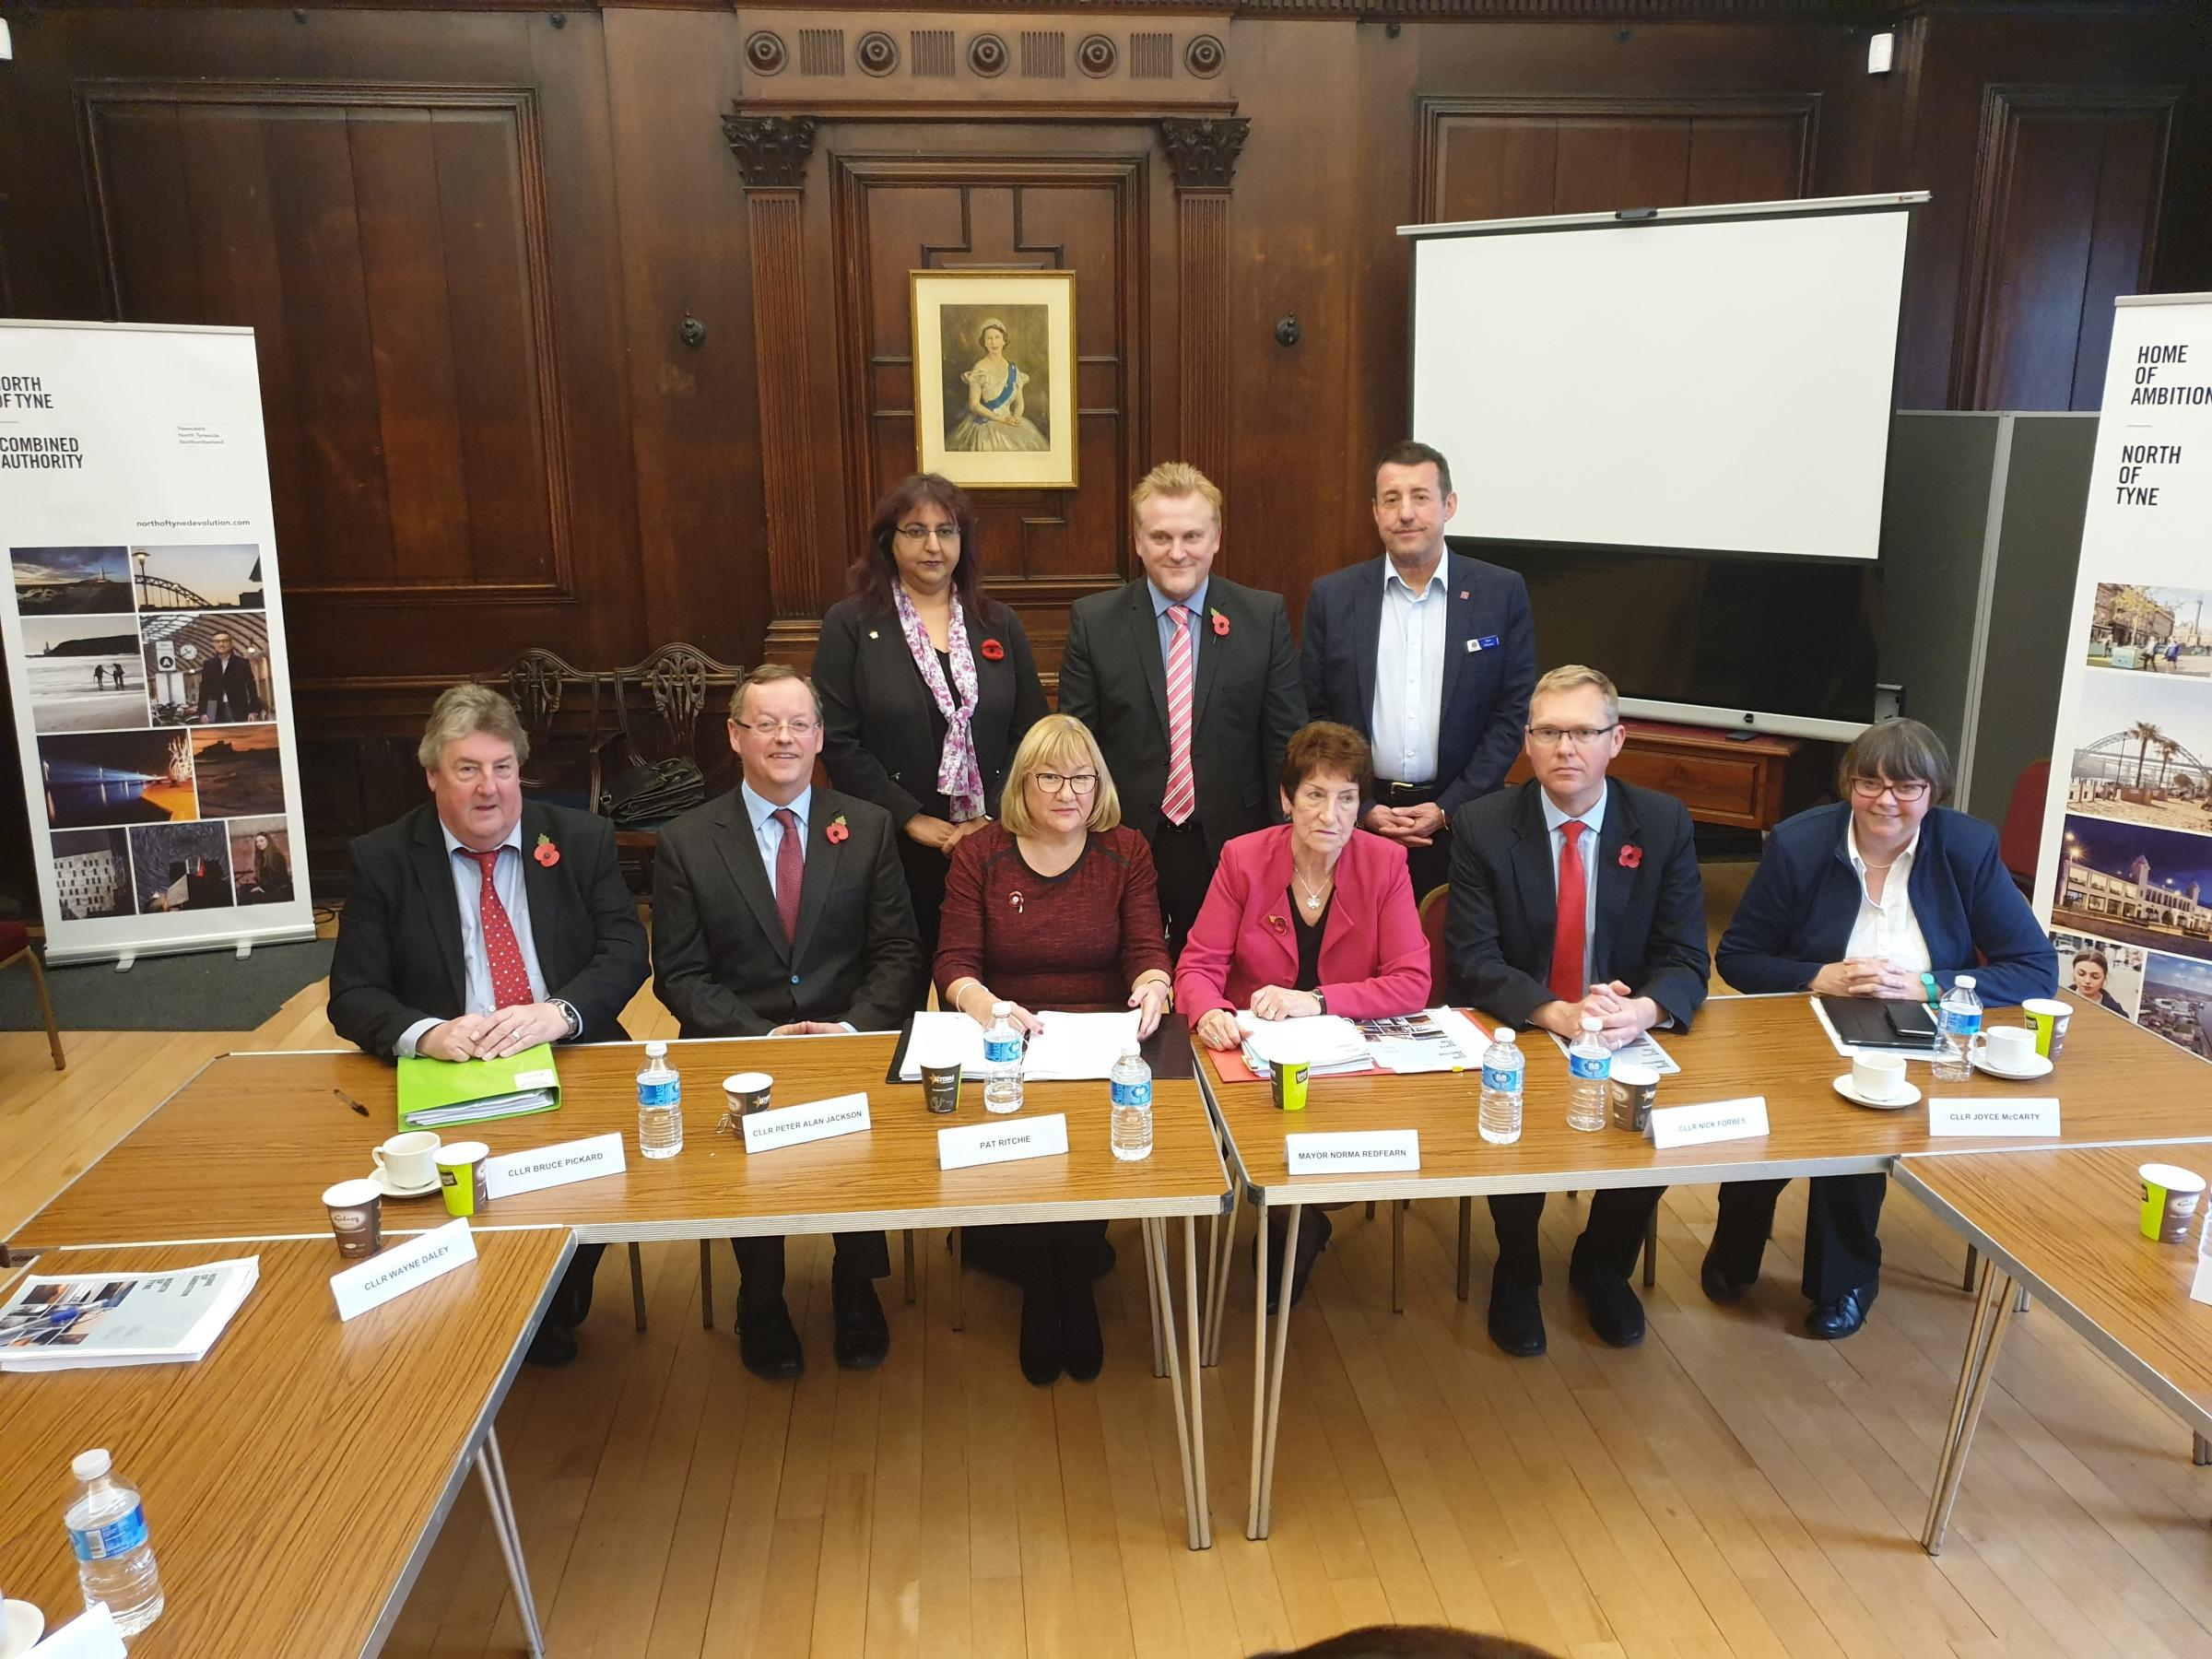 Leaders at the first meeting of the North of Tyne Combined Authority, held at Morpeth Town Hall.